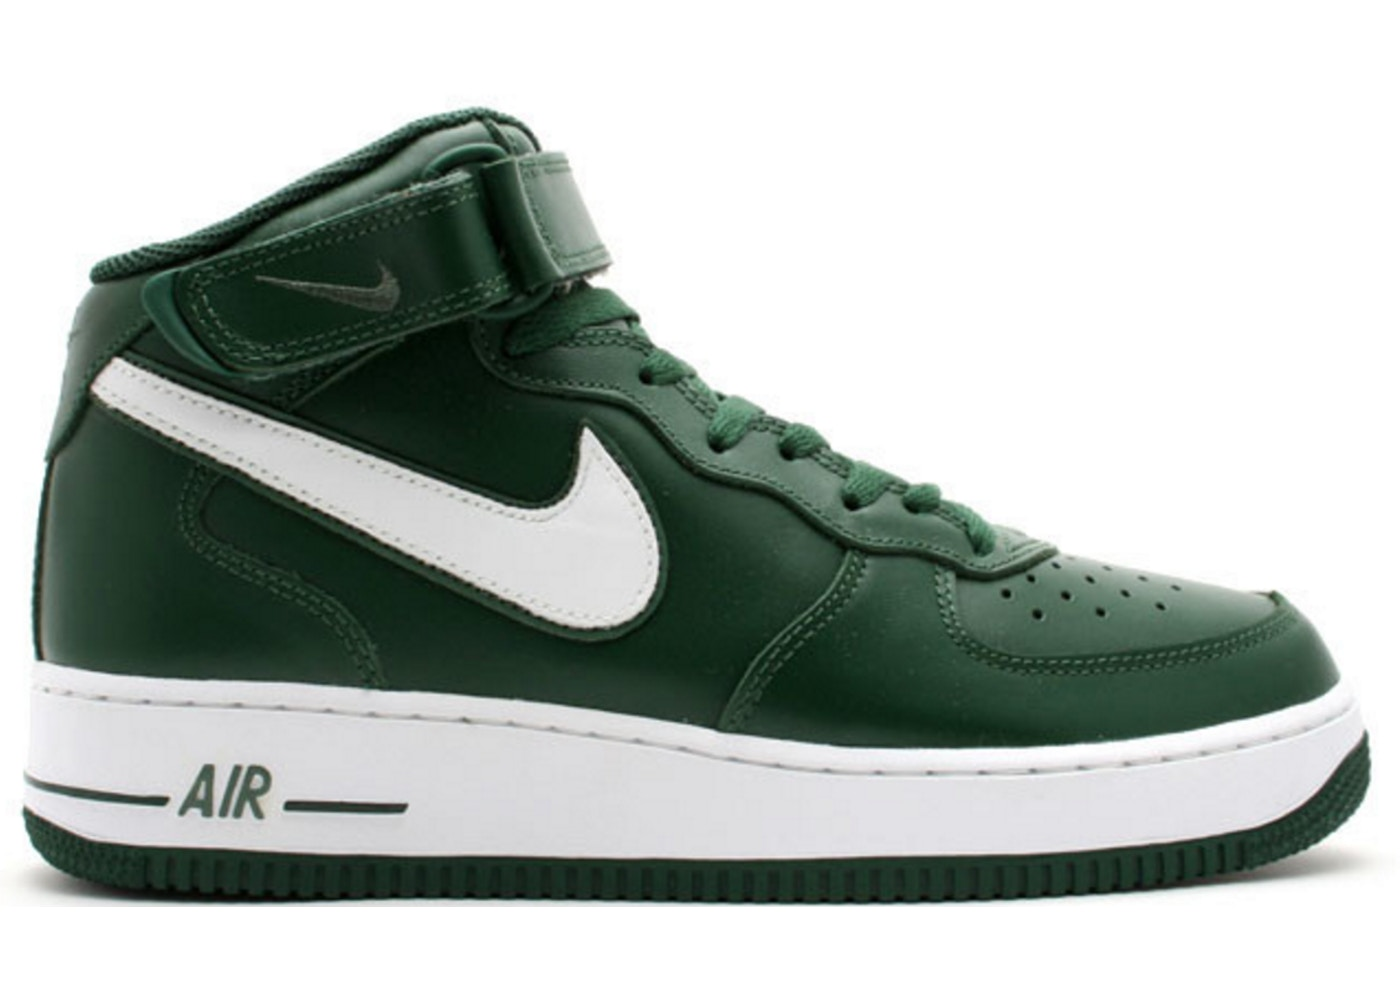 Air Mid Black Force Green 1 Forest NXnwPk80O